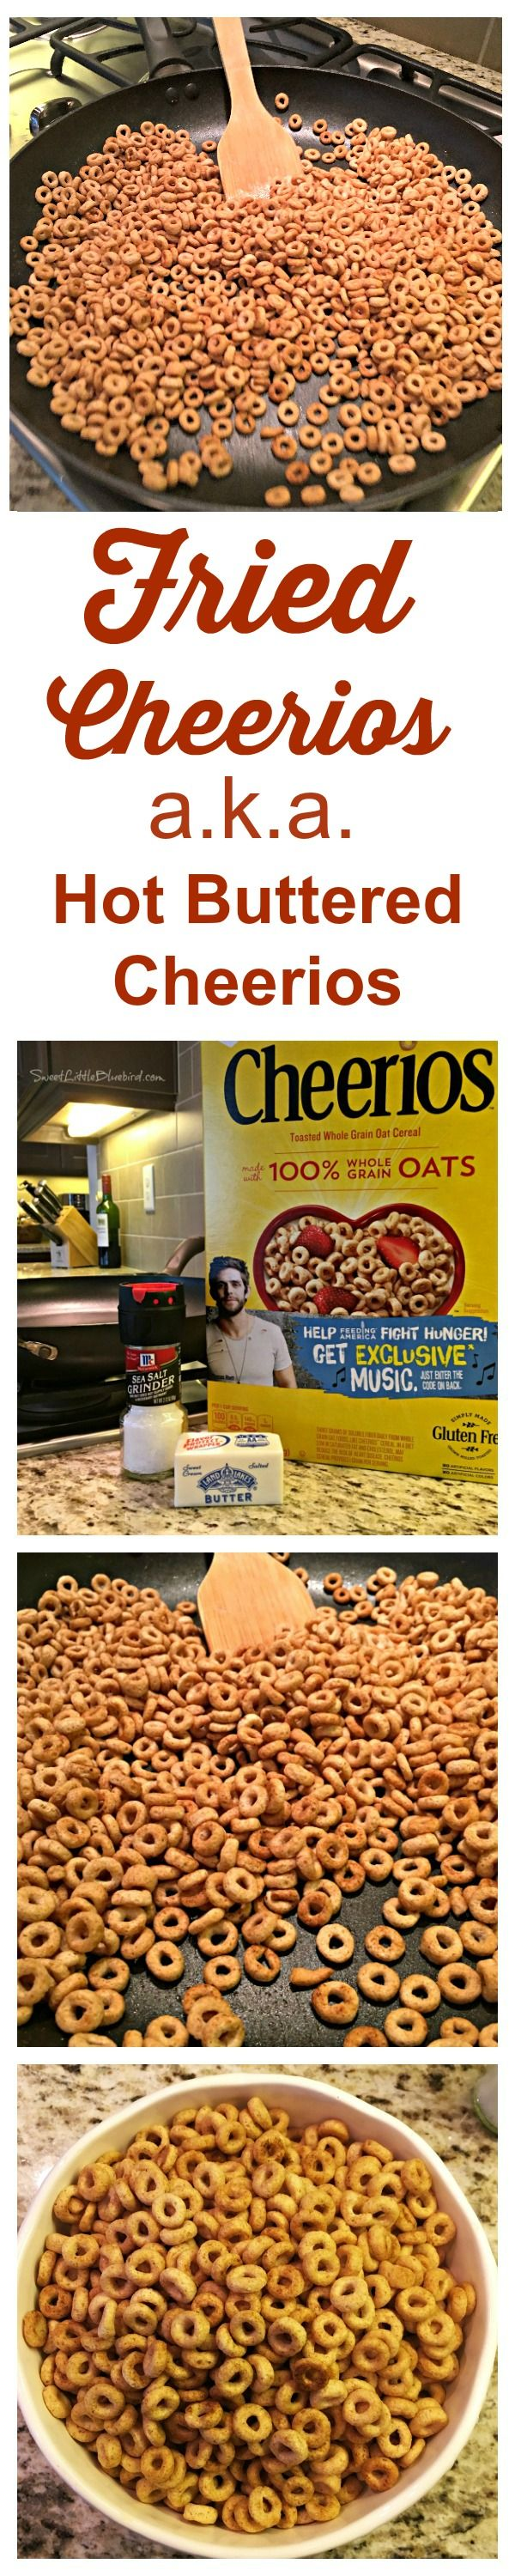 FRIED CHEERIOS (aka HOT BUTTERED CHEERIOS) An old school classic snack - buttery, crunchy, salty goodness that's ready in about 5 minutes! Simple to make, so good. Skip the popcorn and give this recipe a try!